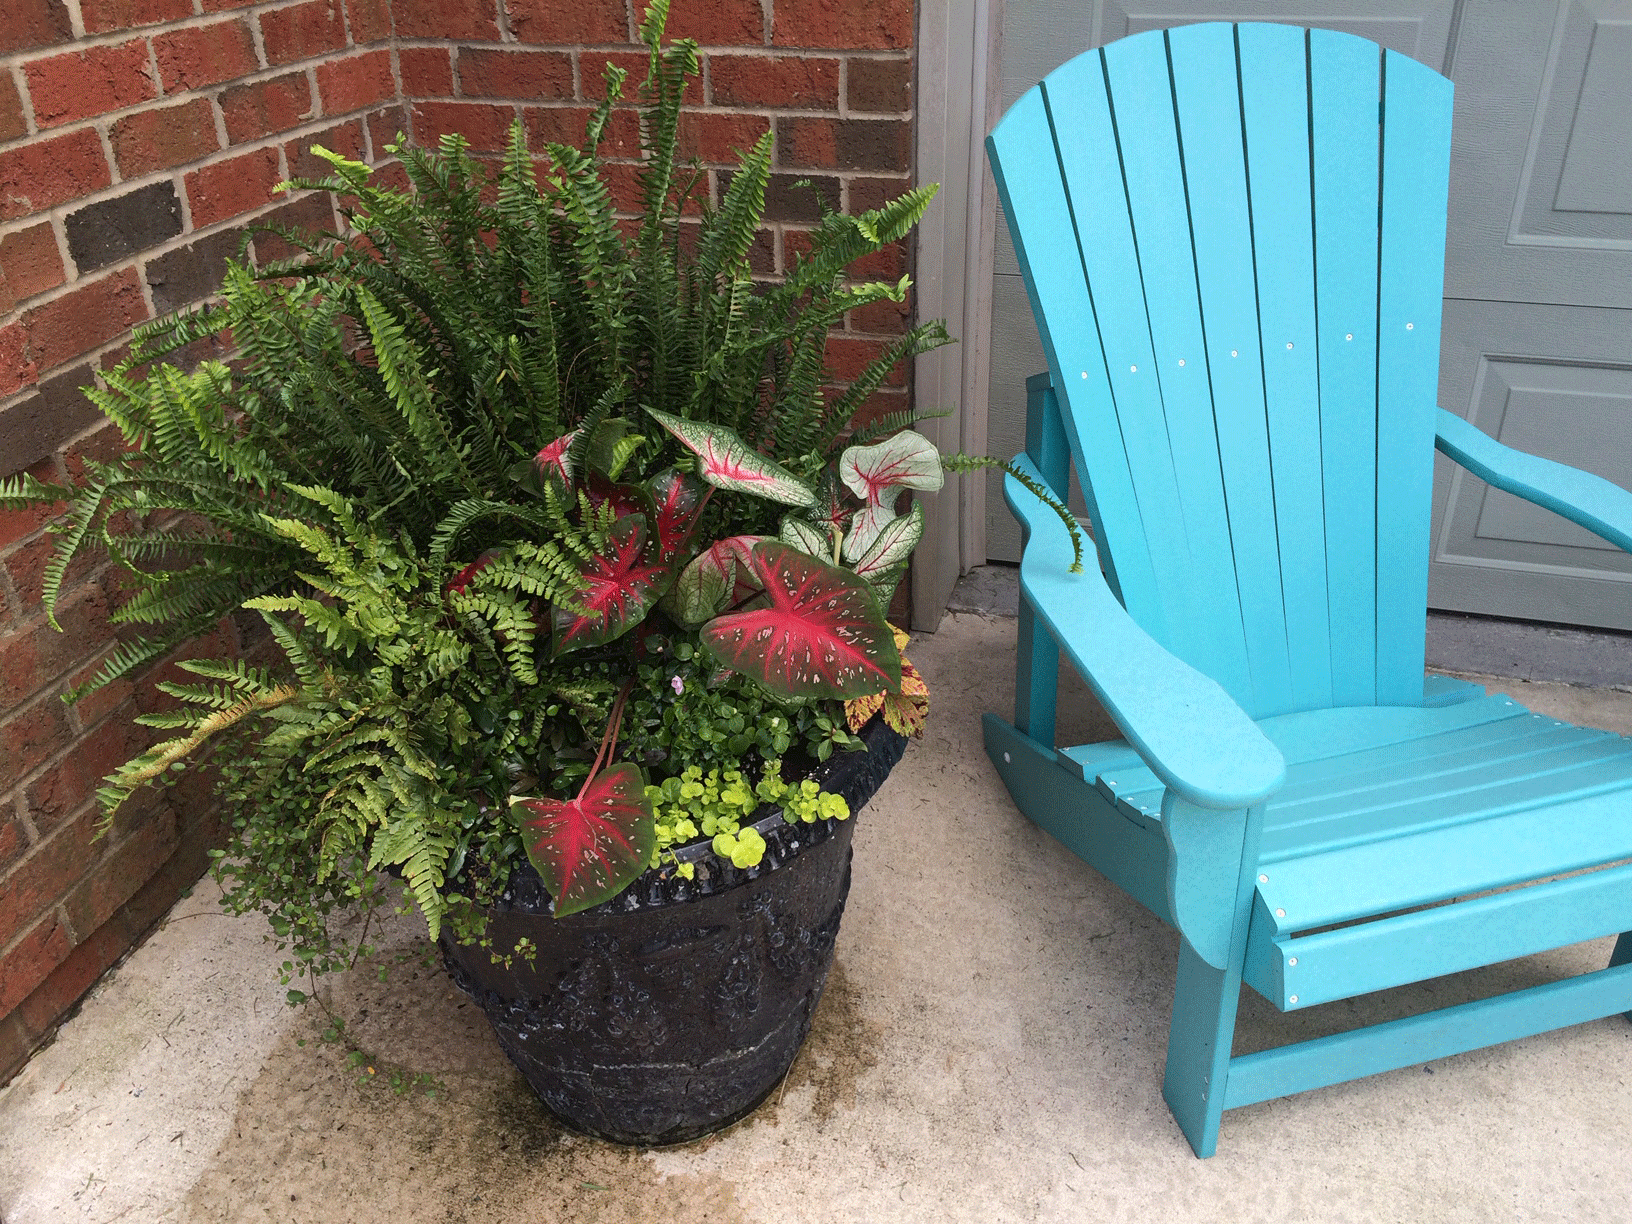 Potted container garden and plant with blue chair